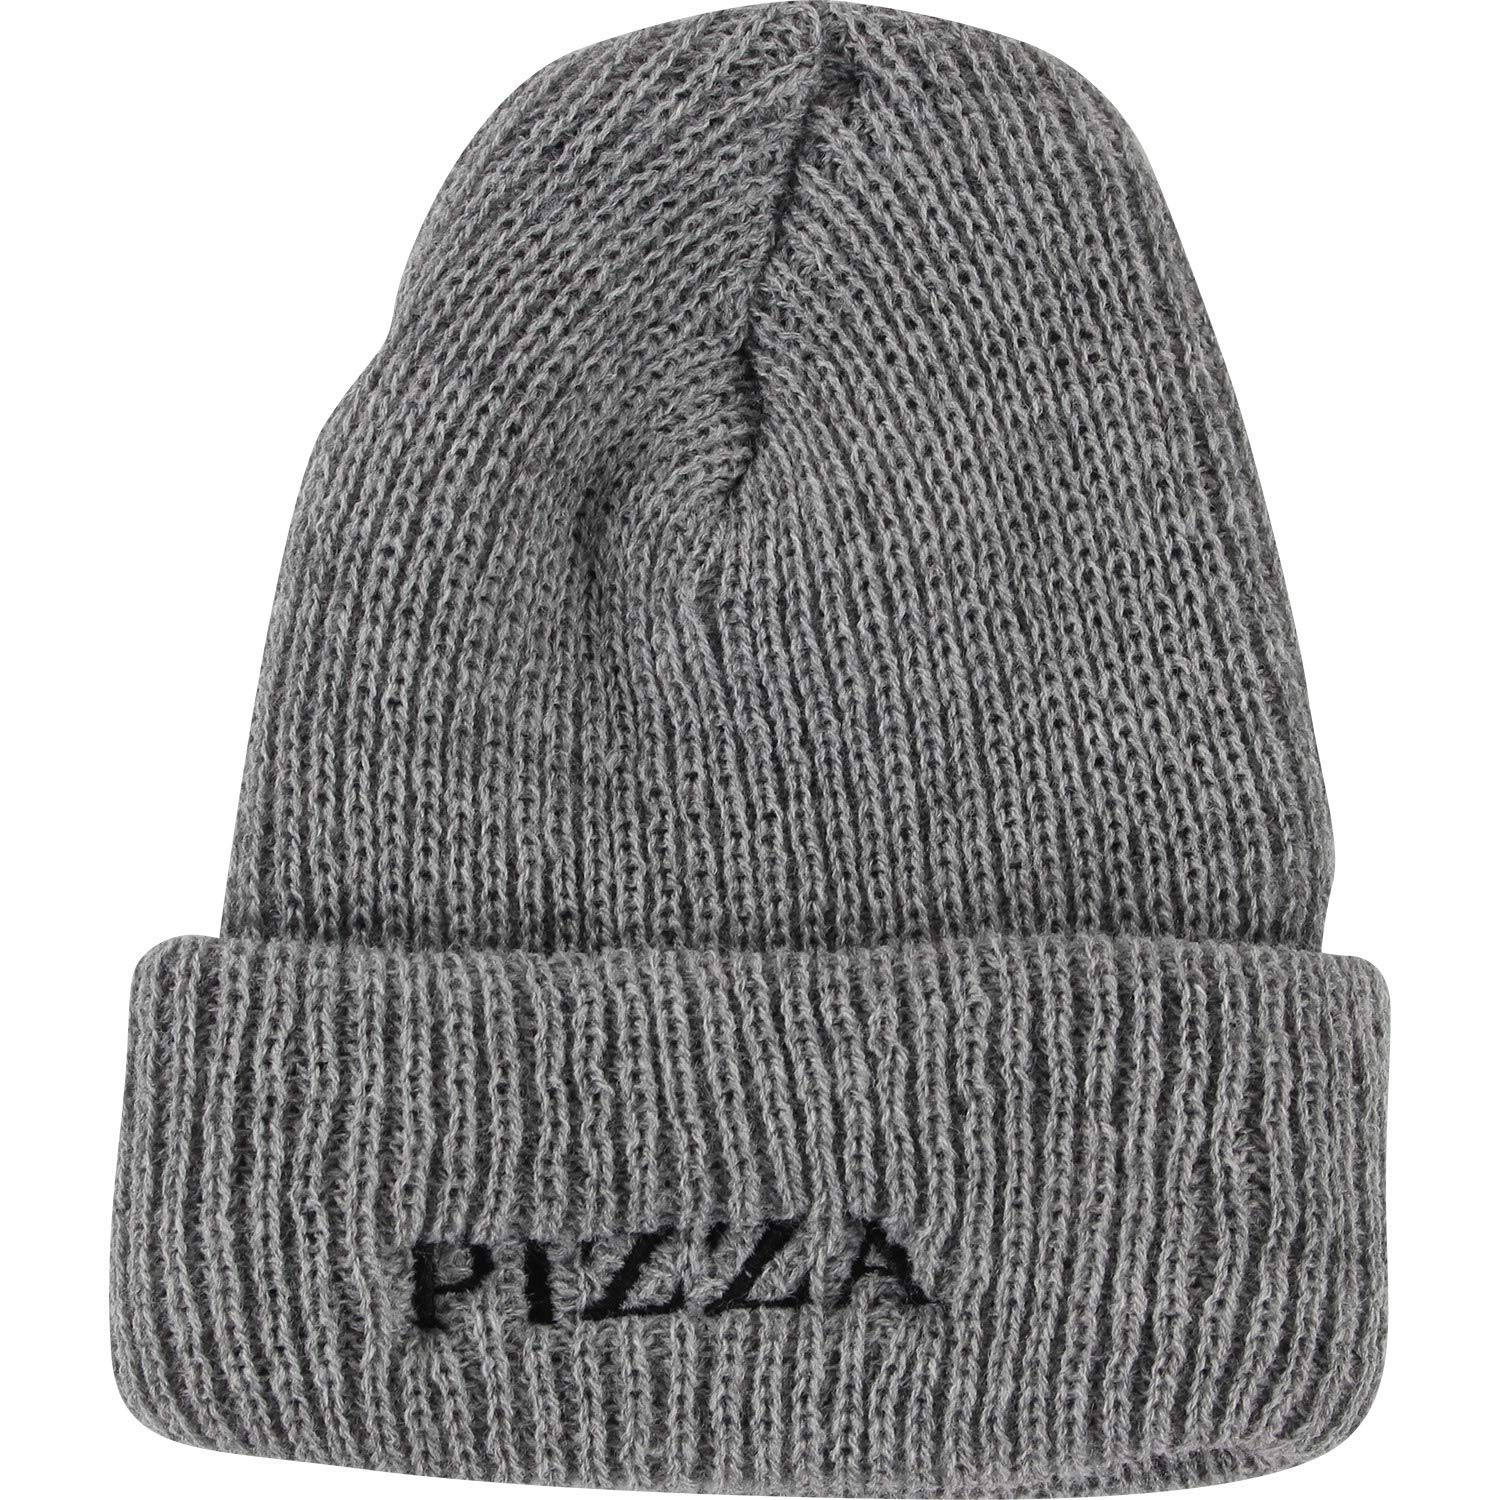 d02214217df8d Get Quotations · Pizza Skateboards Couture Grey Beanie Hat